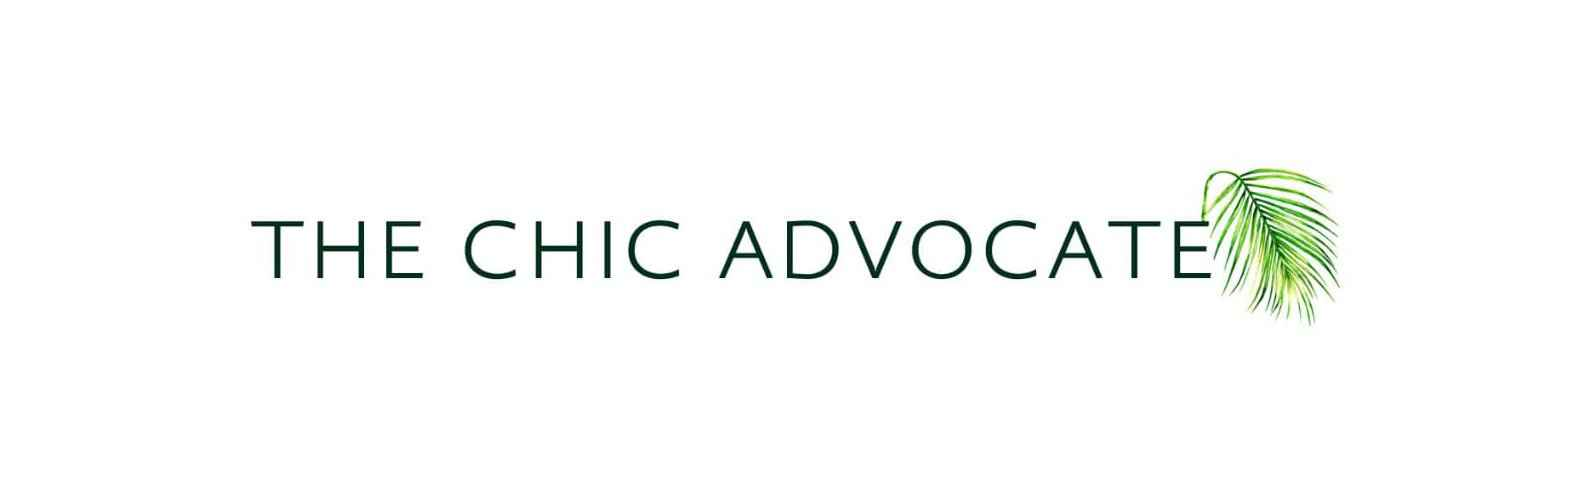 The Chic Advocate